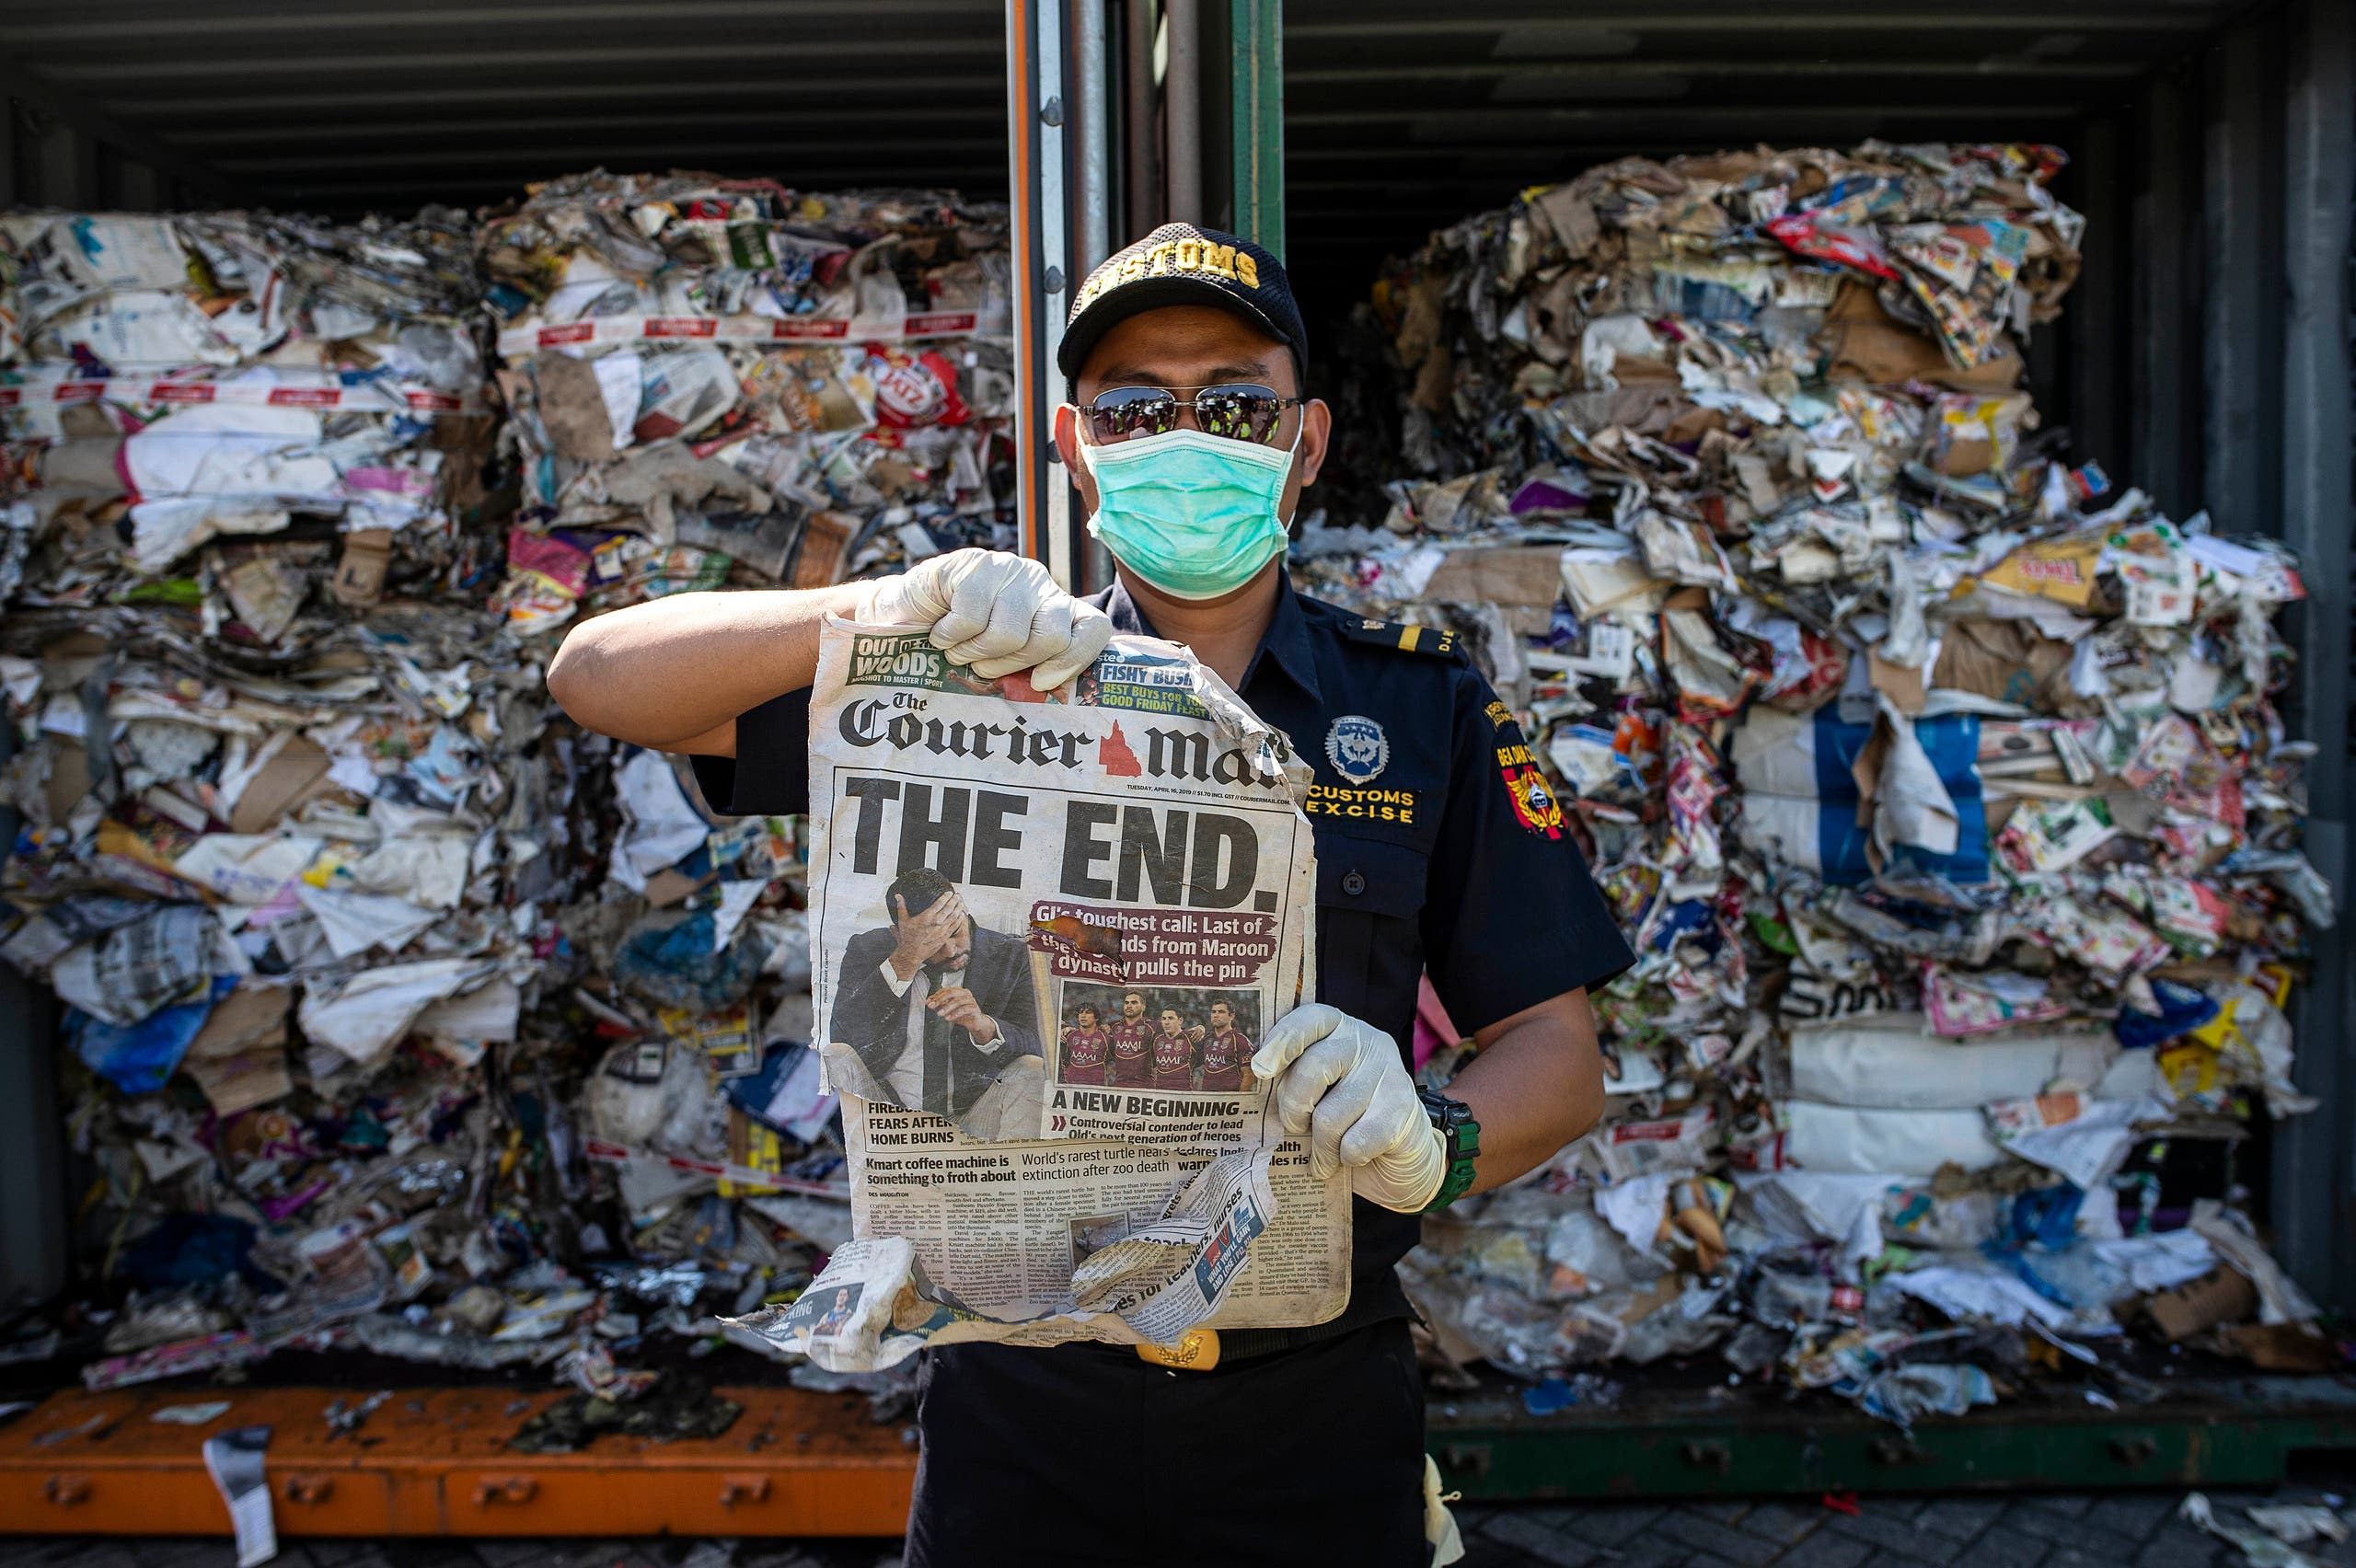 An Indonesian customs officer holds up a newspaper from a container filled with trash originating from Australia, which should have contained only waste paper, but authorities also found hazardous material and household trash, at a port in Surabaya on July 9, 2019. (AFP)